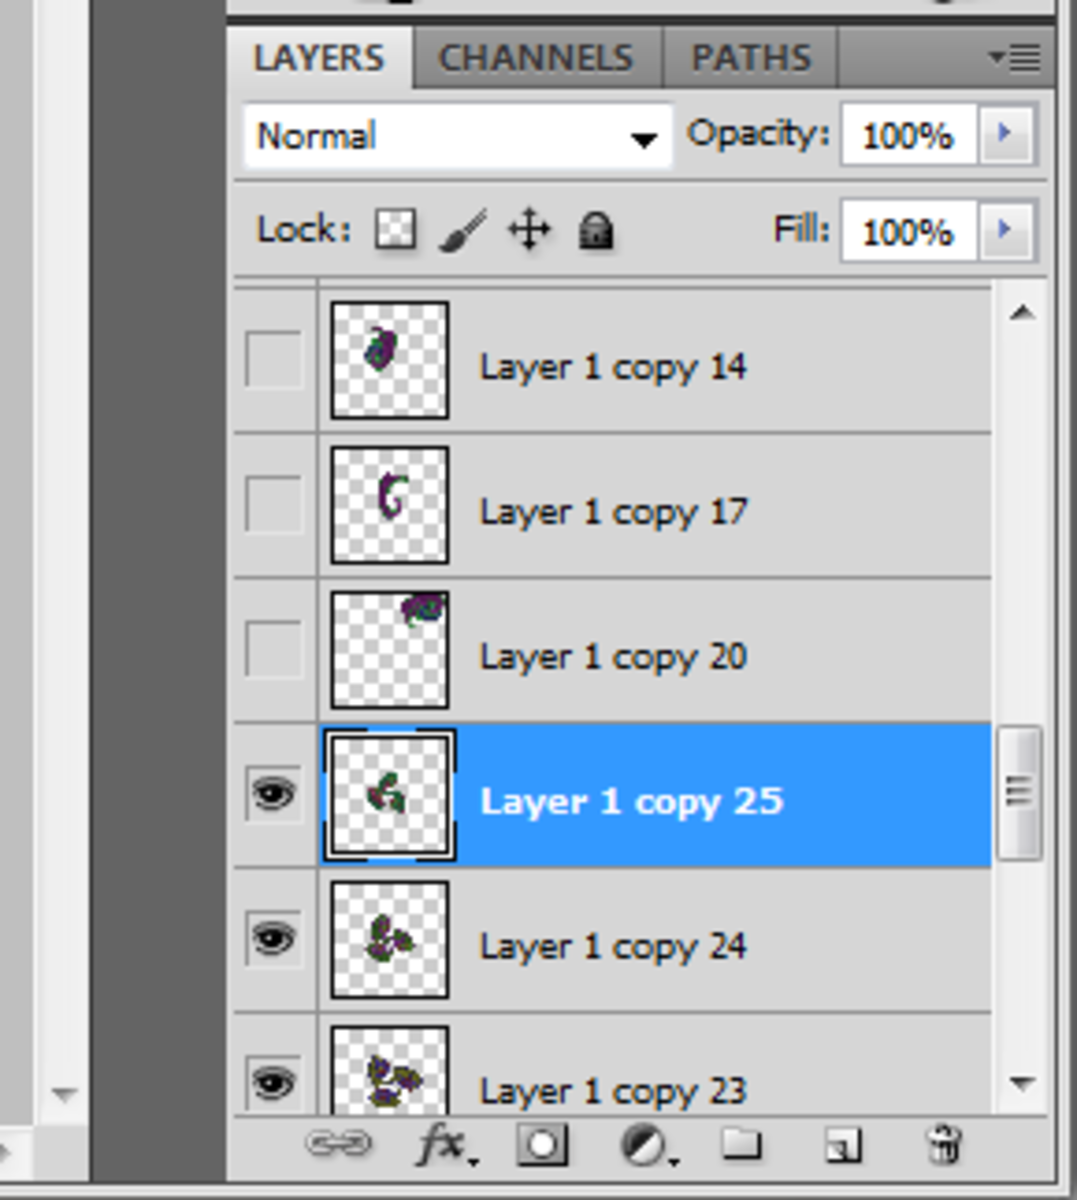 Hide any layers that you don't want to merge